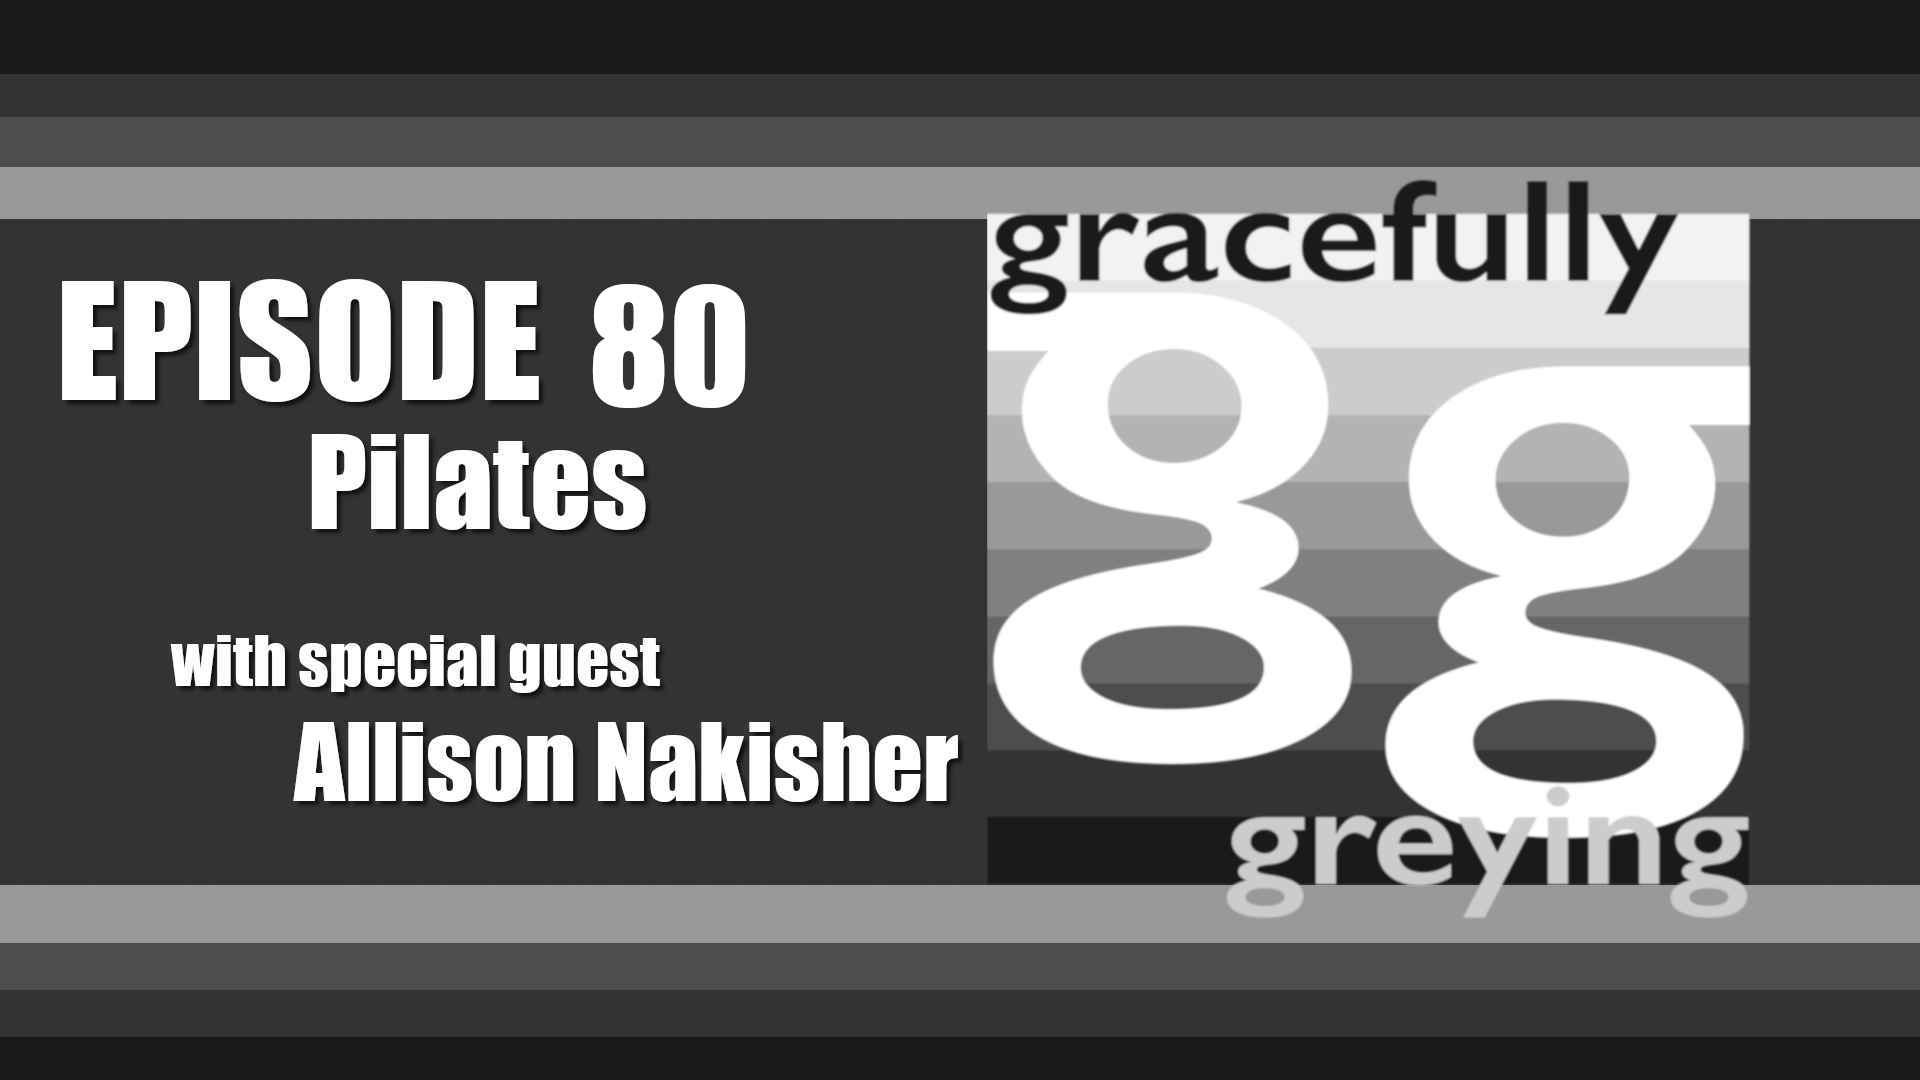 Gracefully Greying - Episode 80